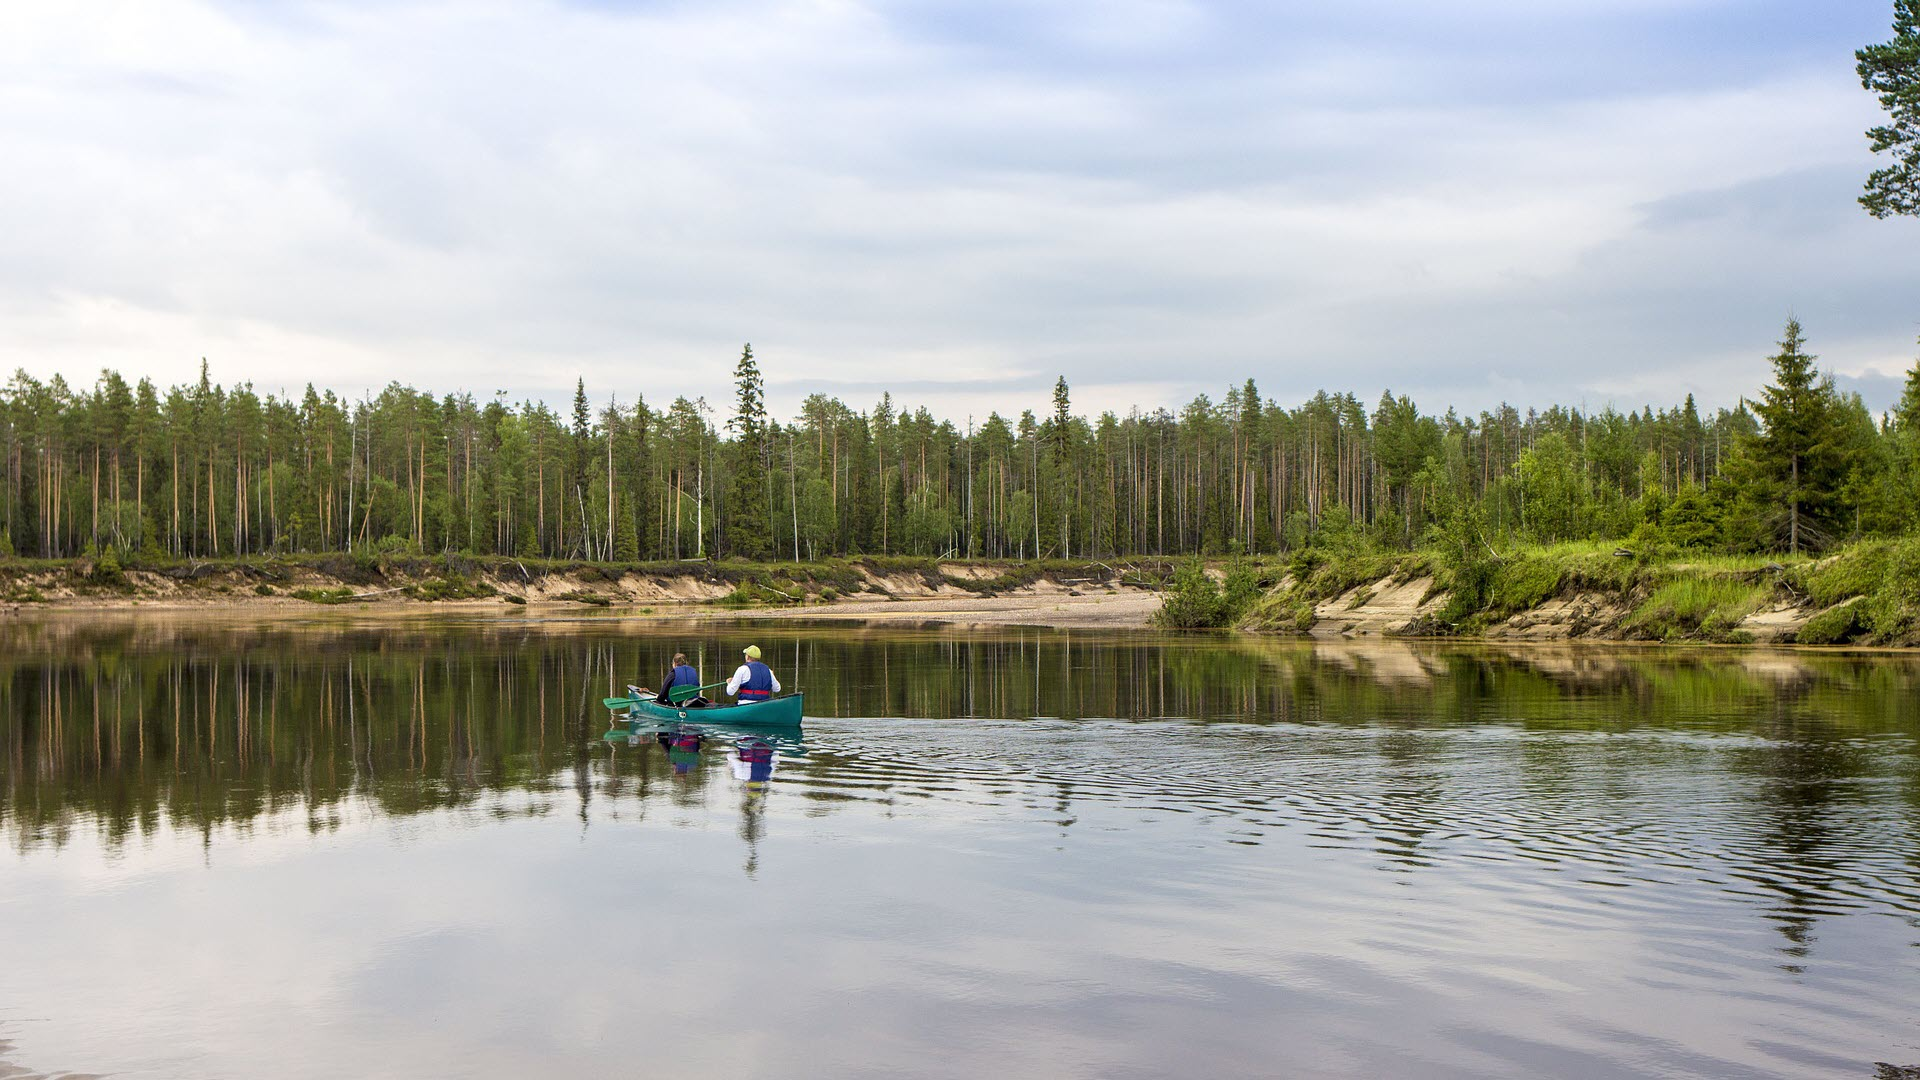 two men fishing on a boat on a lake; trees can be seen on the shoreline